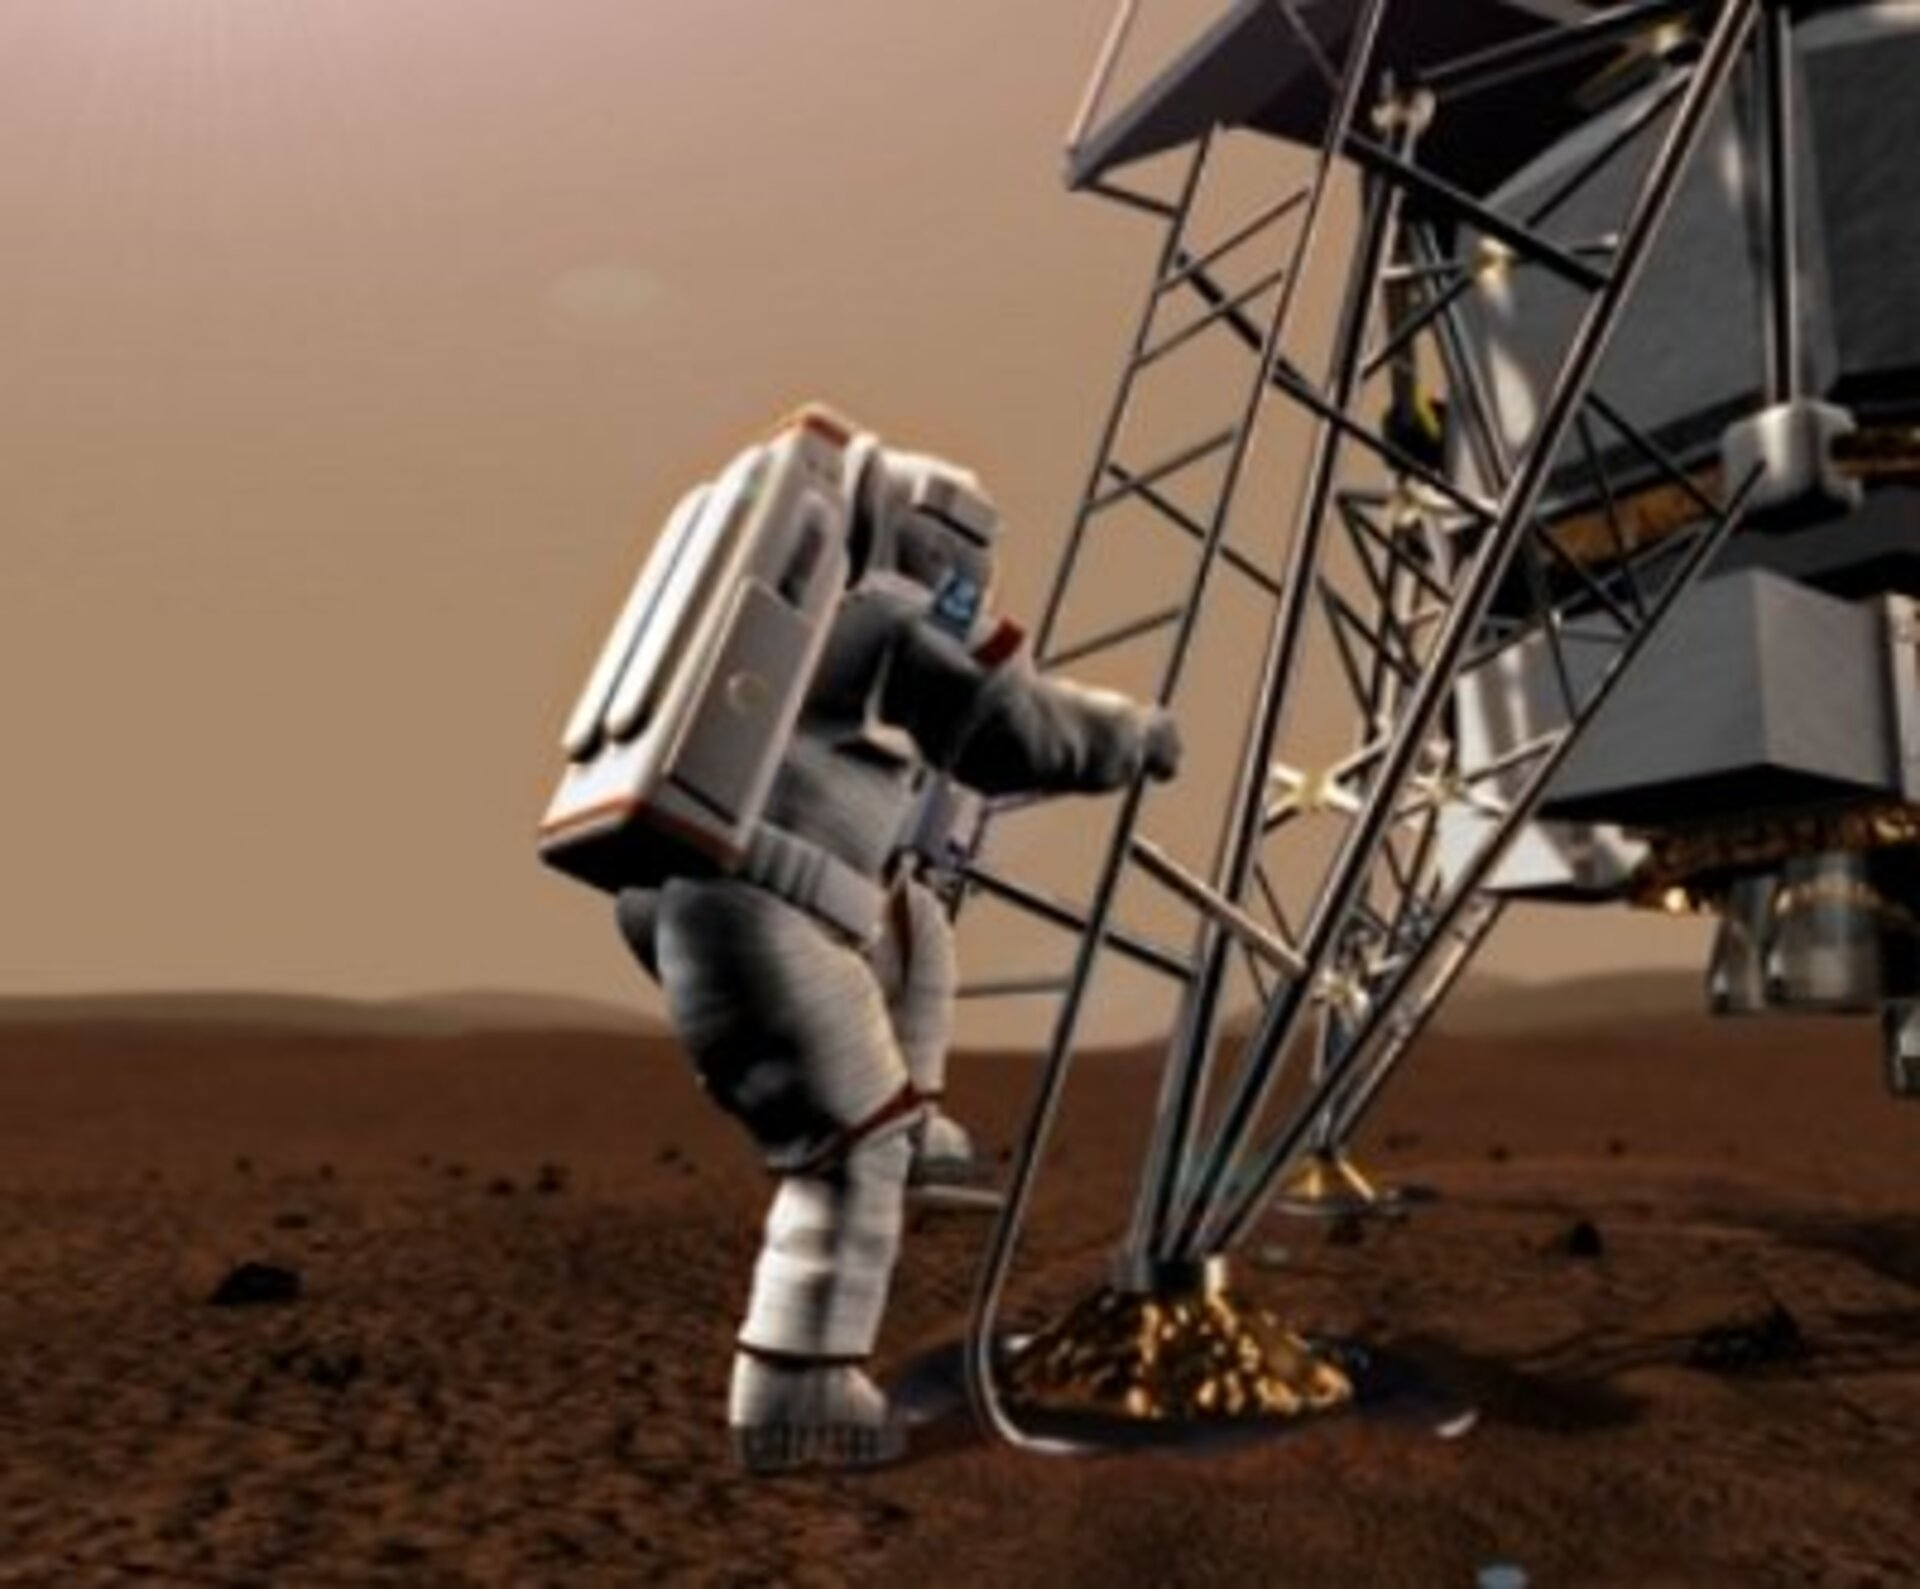 Preparing for a long-duration human mission to Mars